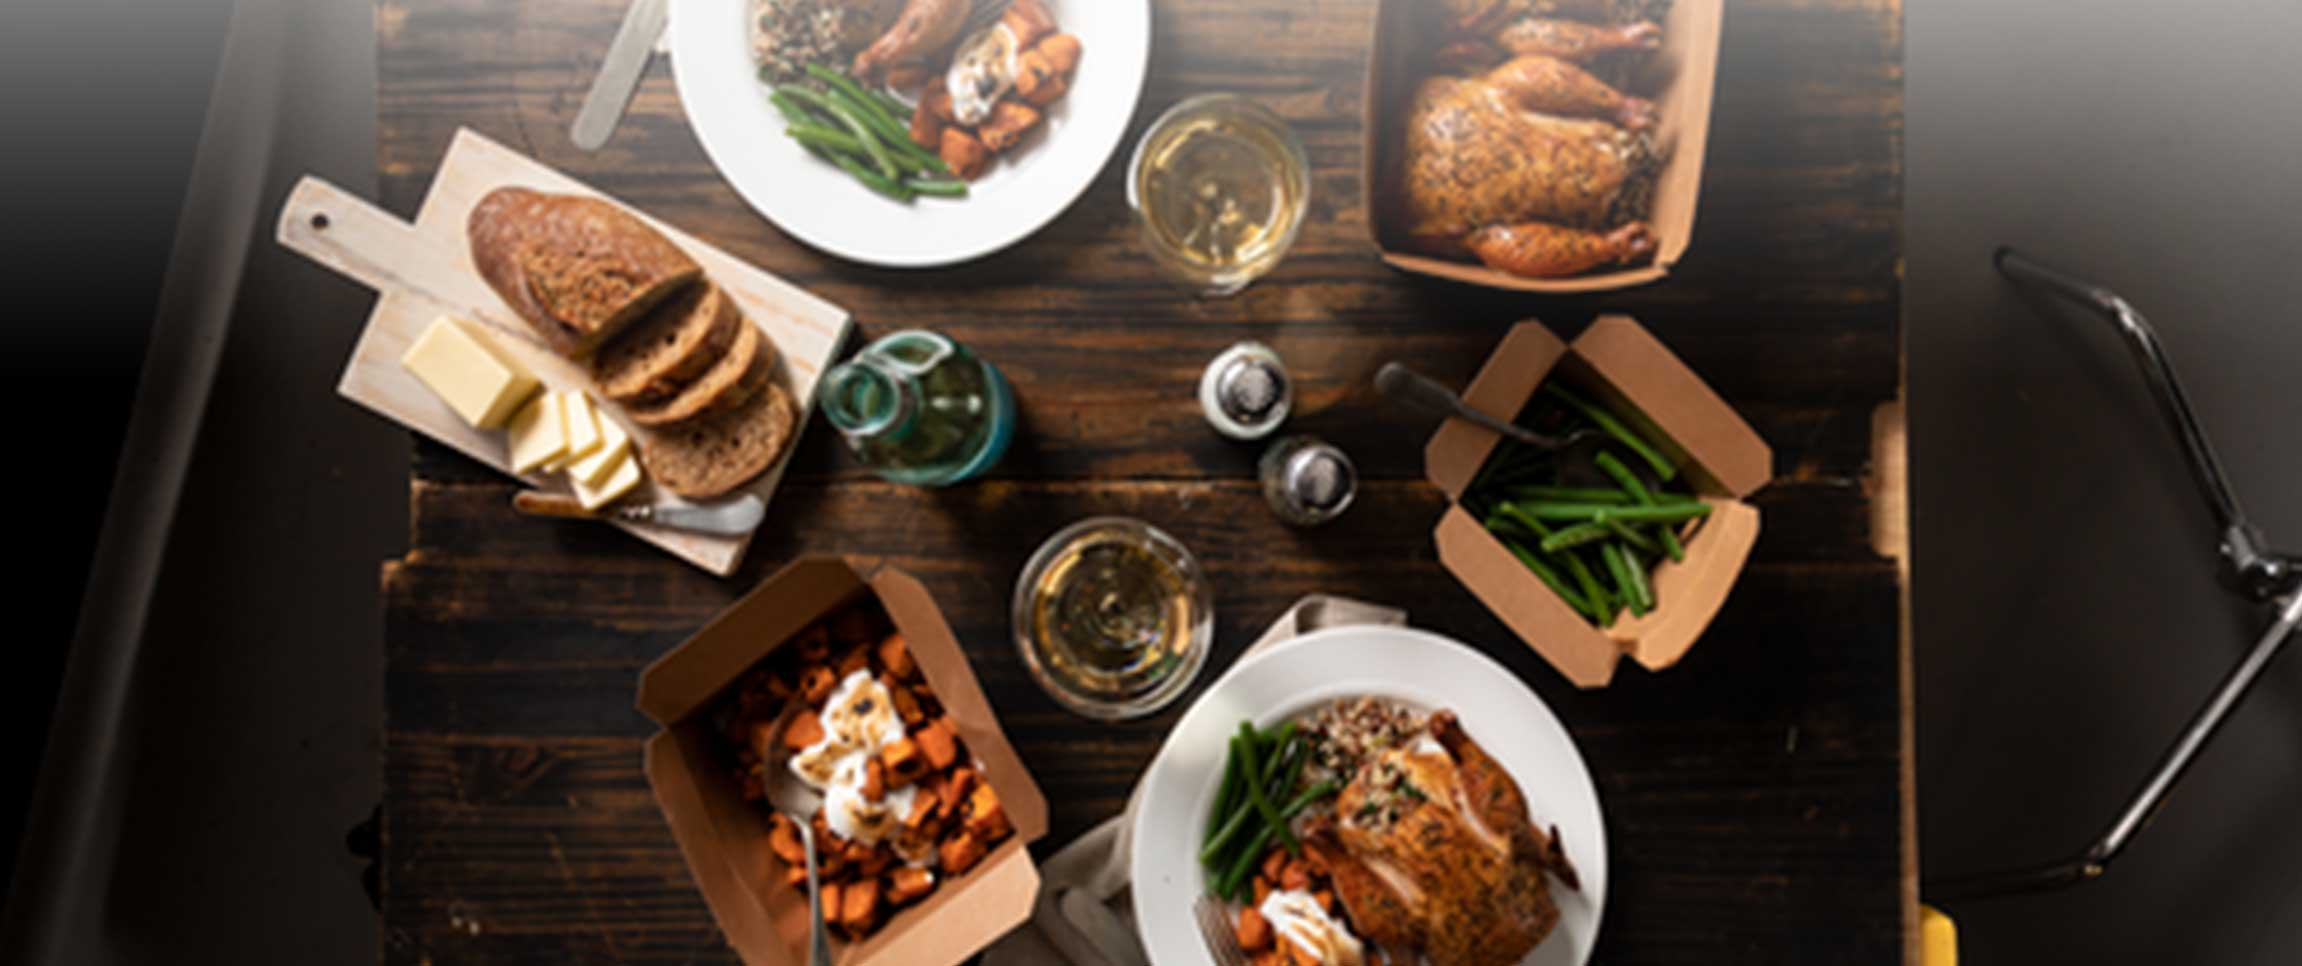 Cornish Game Hen takeout meal on table with side options